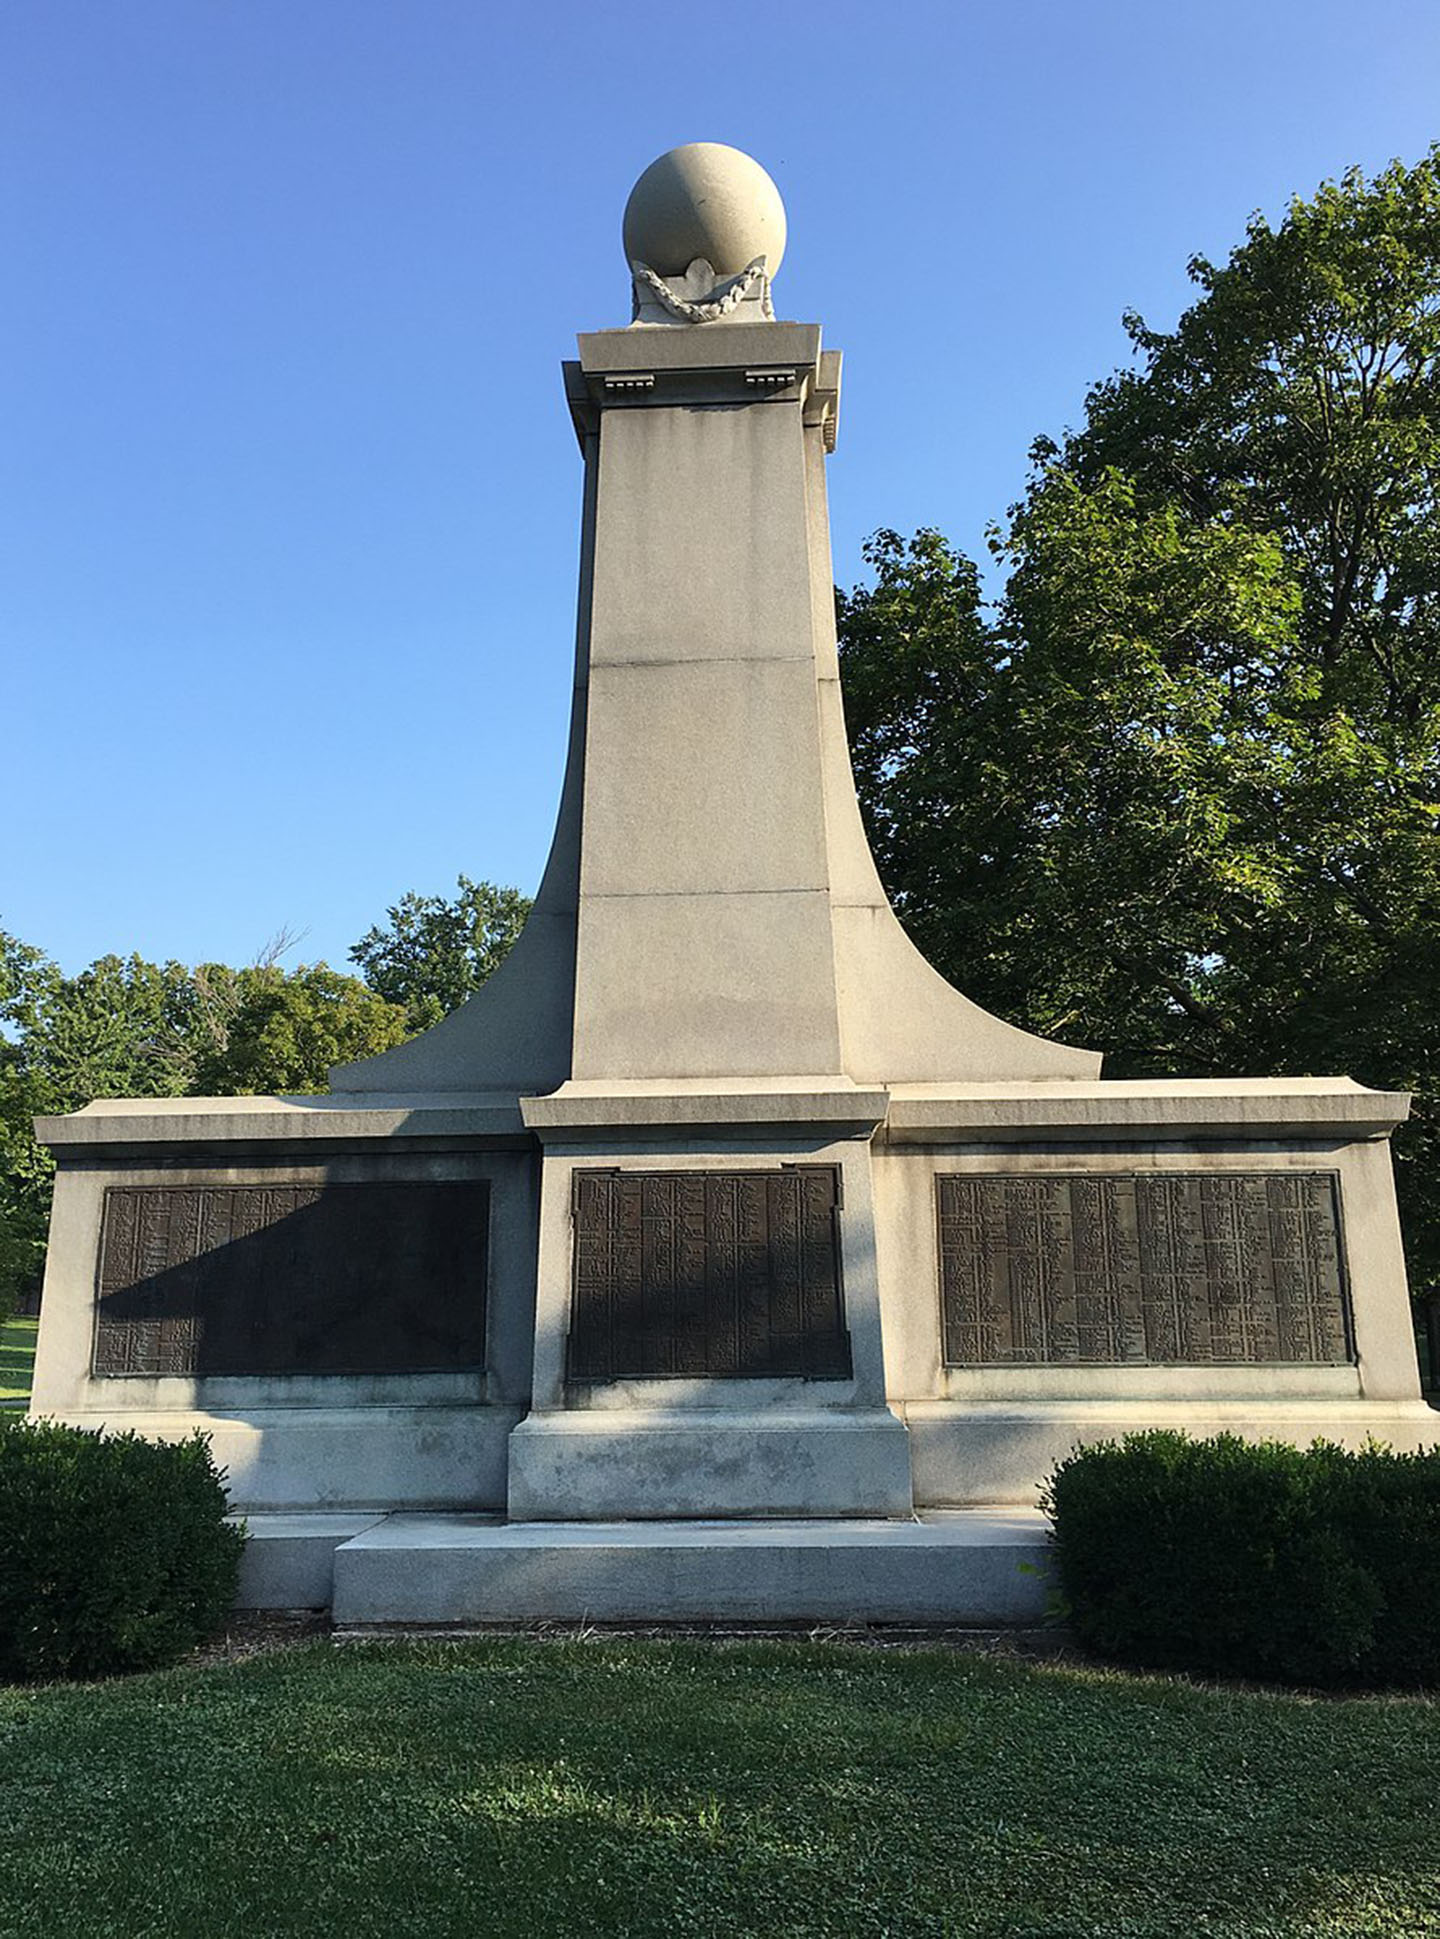 - After a call for removal of the Garfield Park's memorial, the Indianapolis Parks and Recreation department is exploring options to remove a monument memorializing the deaths of Confederate prisoners of war.